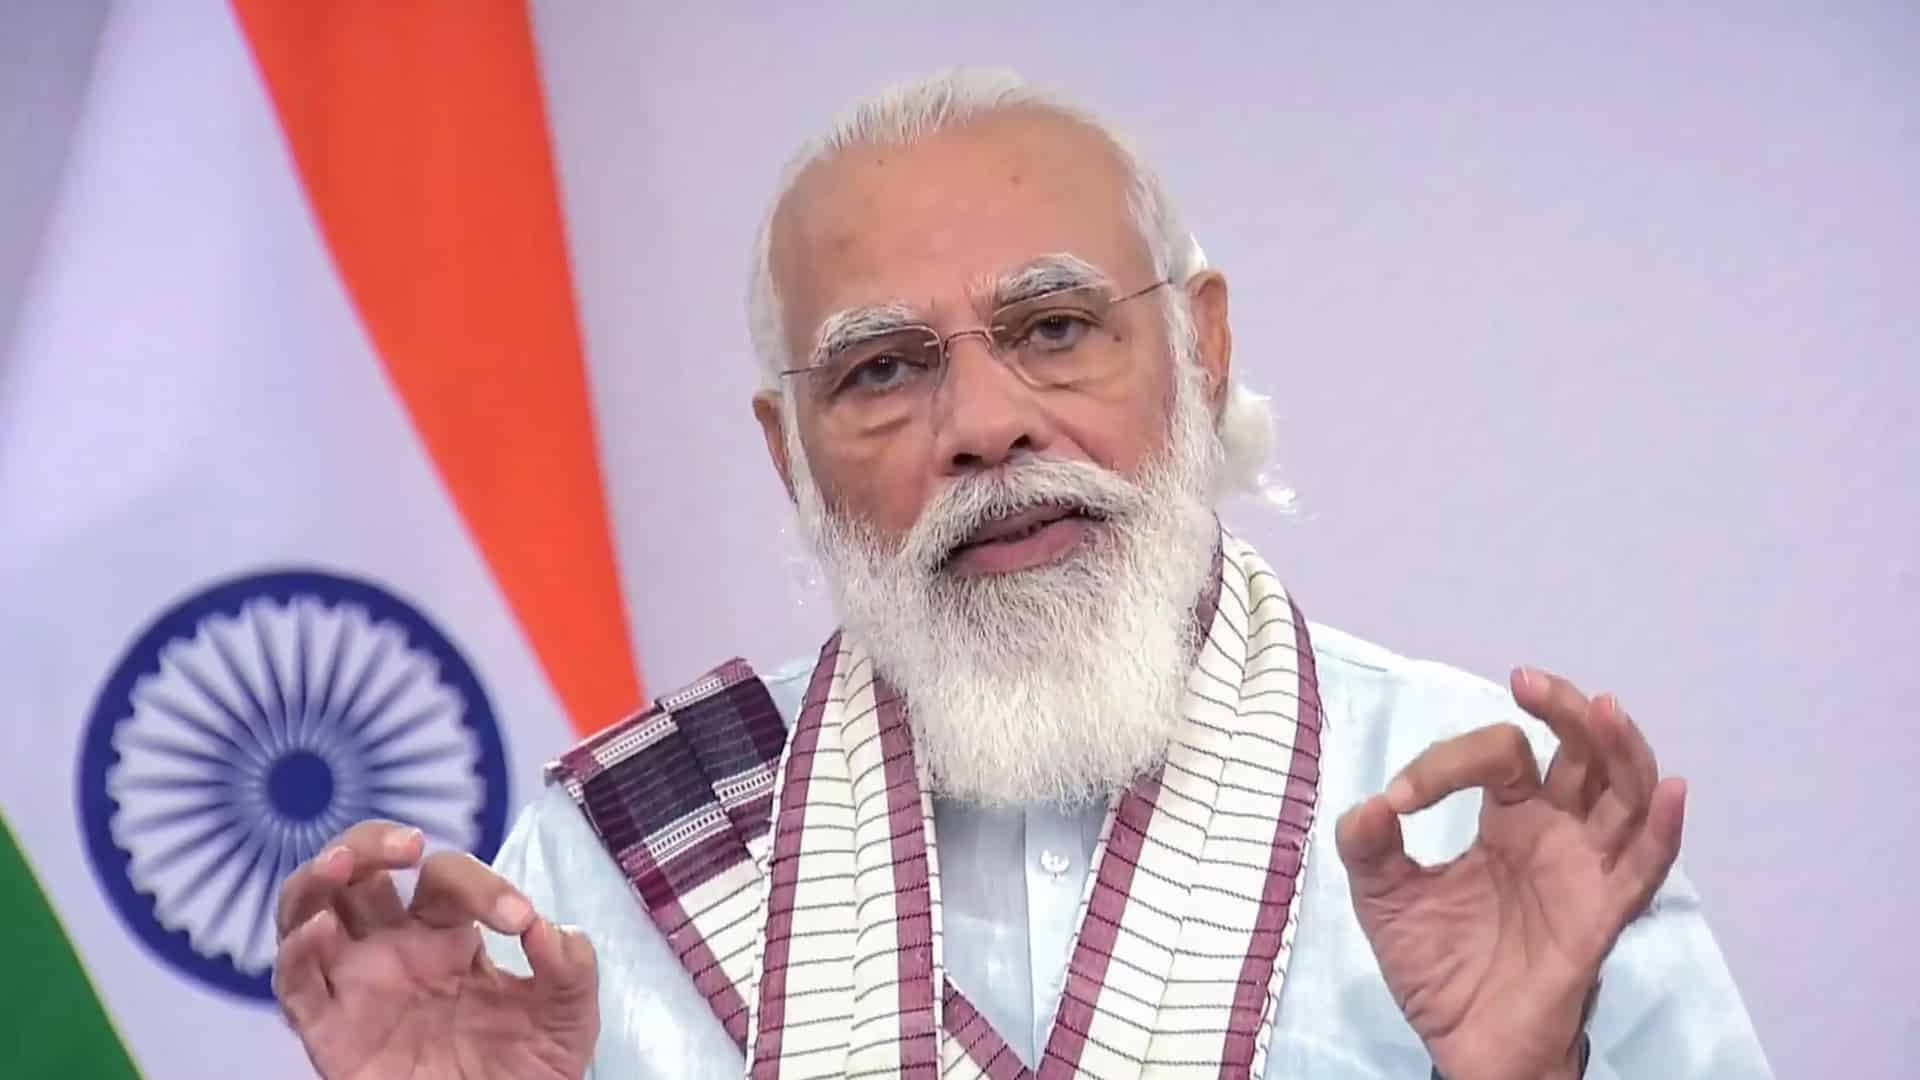 International travel should be made easier through mutual recognition of vaccine certificates: PM Modi